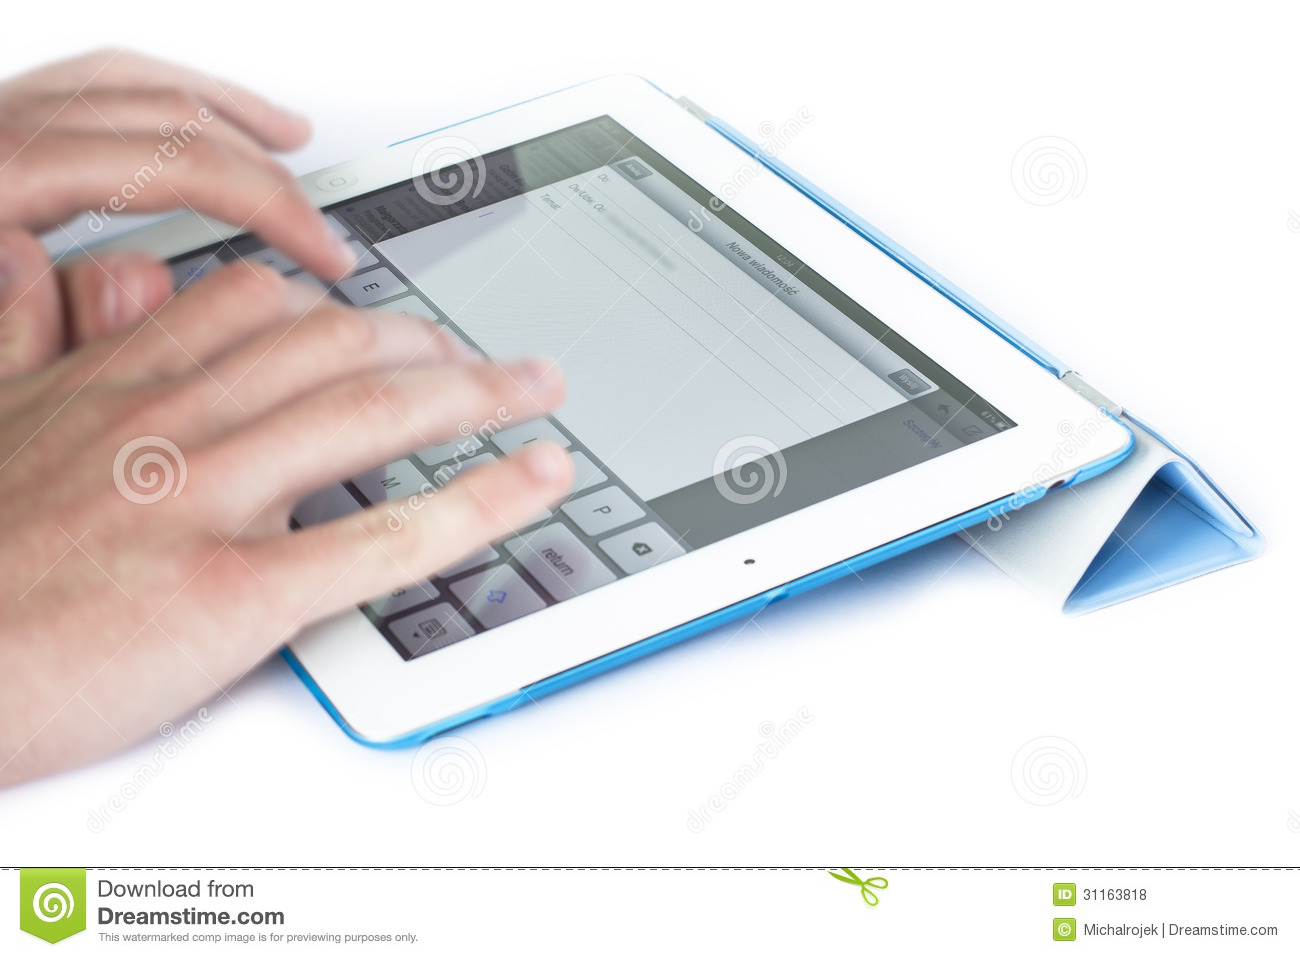 How to write an email on my ipad